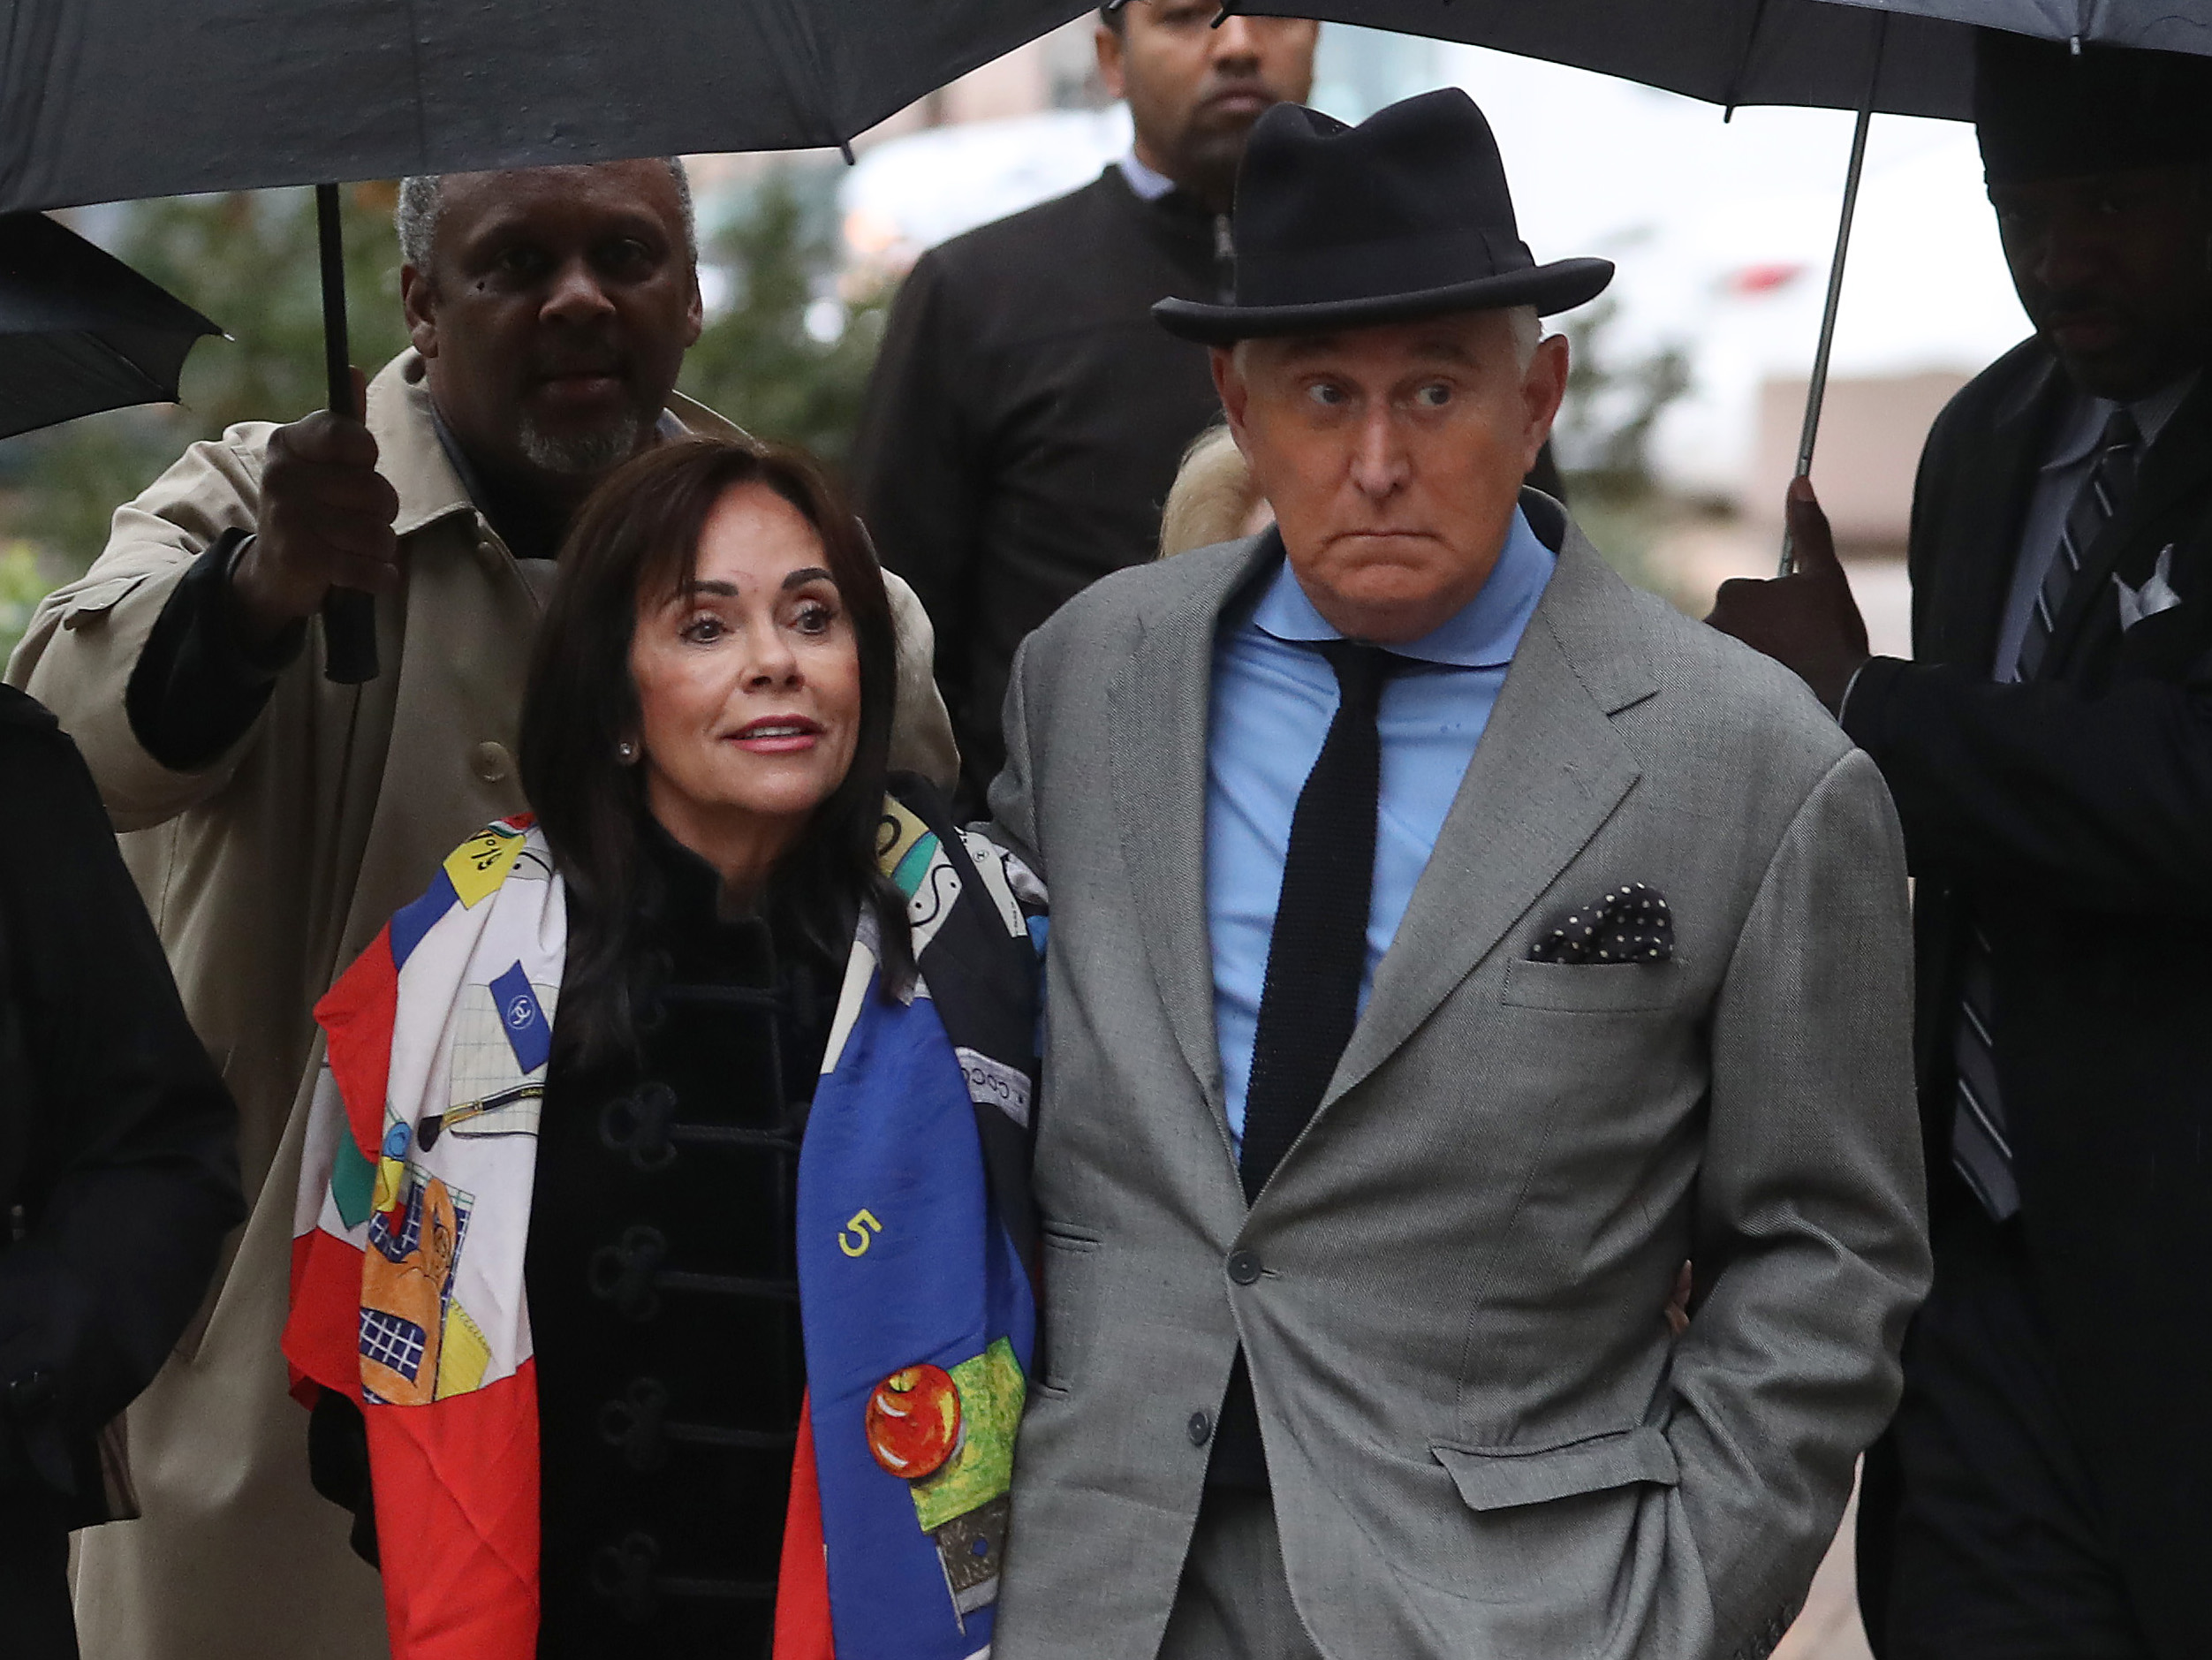 Roger Stone, the former adviser to President Donald Trump, stands outside with his wife Nydia Stone while people around them hold up umbrellas.